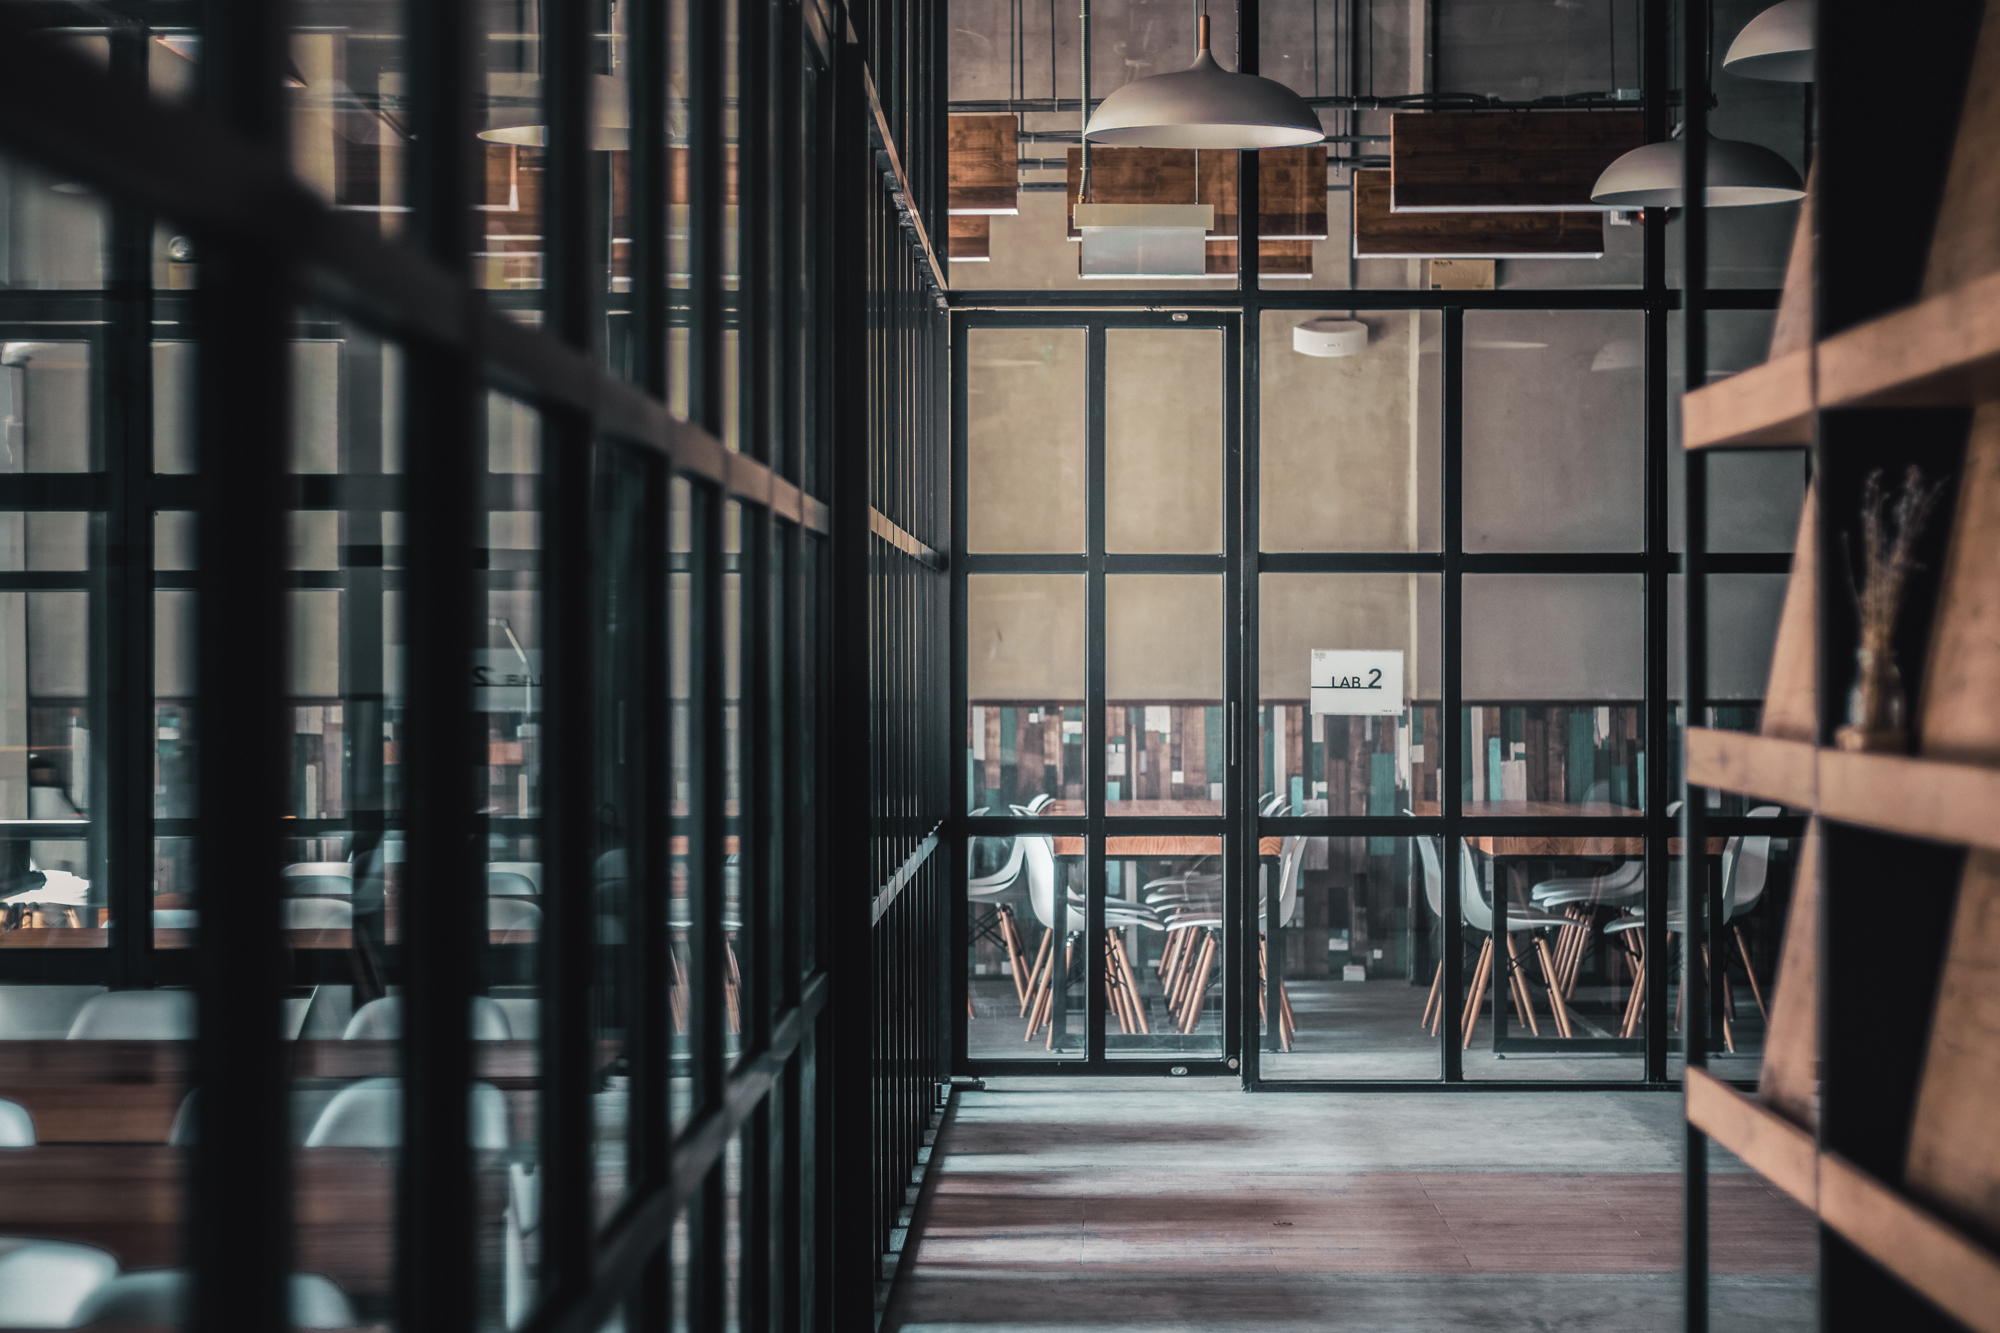 A hallway with windows looking into classrooms filled with chairs and desks (photo by Jason Wong via unsplash)